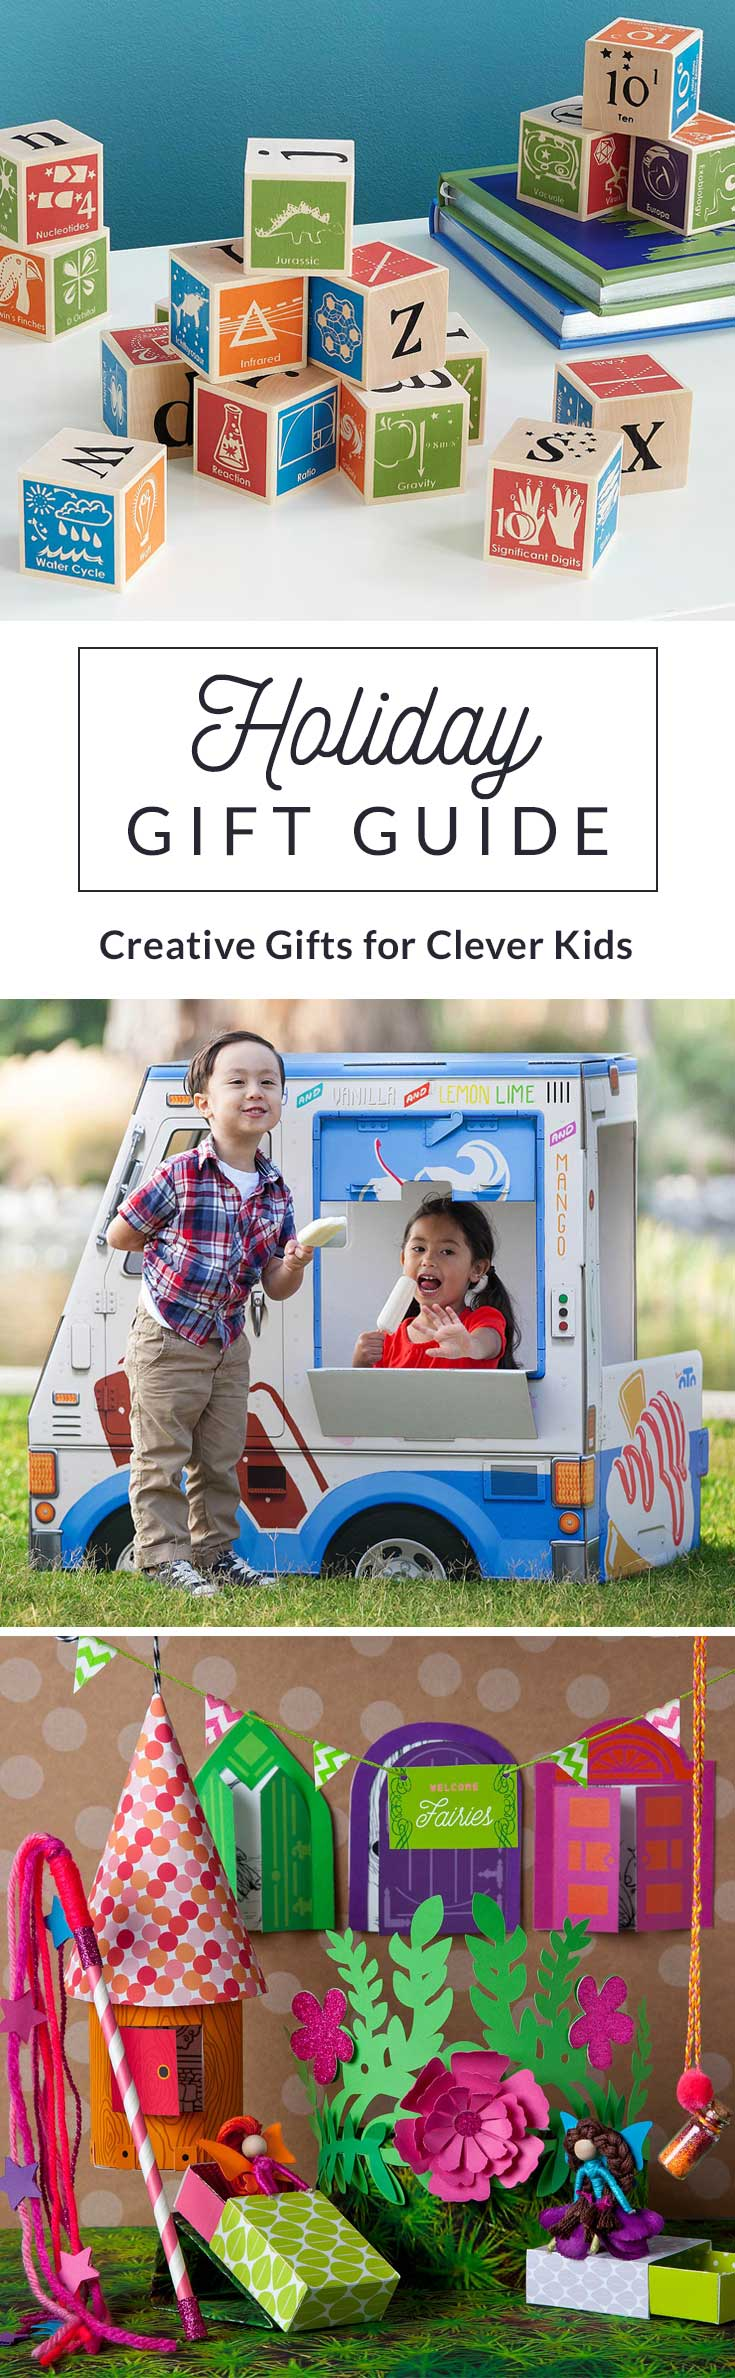 We selected an assortment of fun and educational gift for kids that are sure to keep little ones entertained while those little brains grow big and strong.